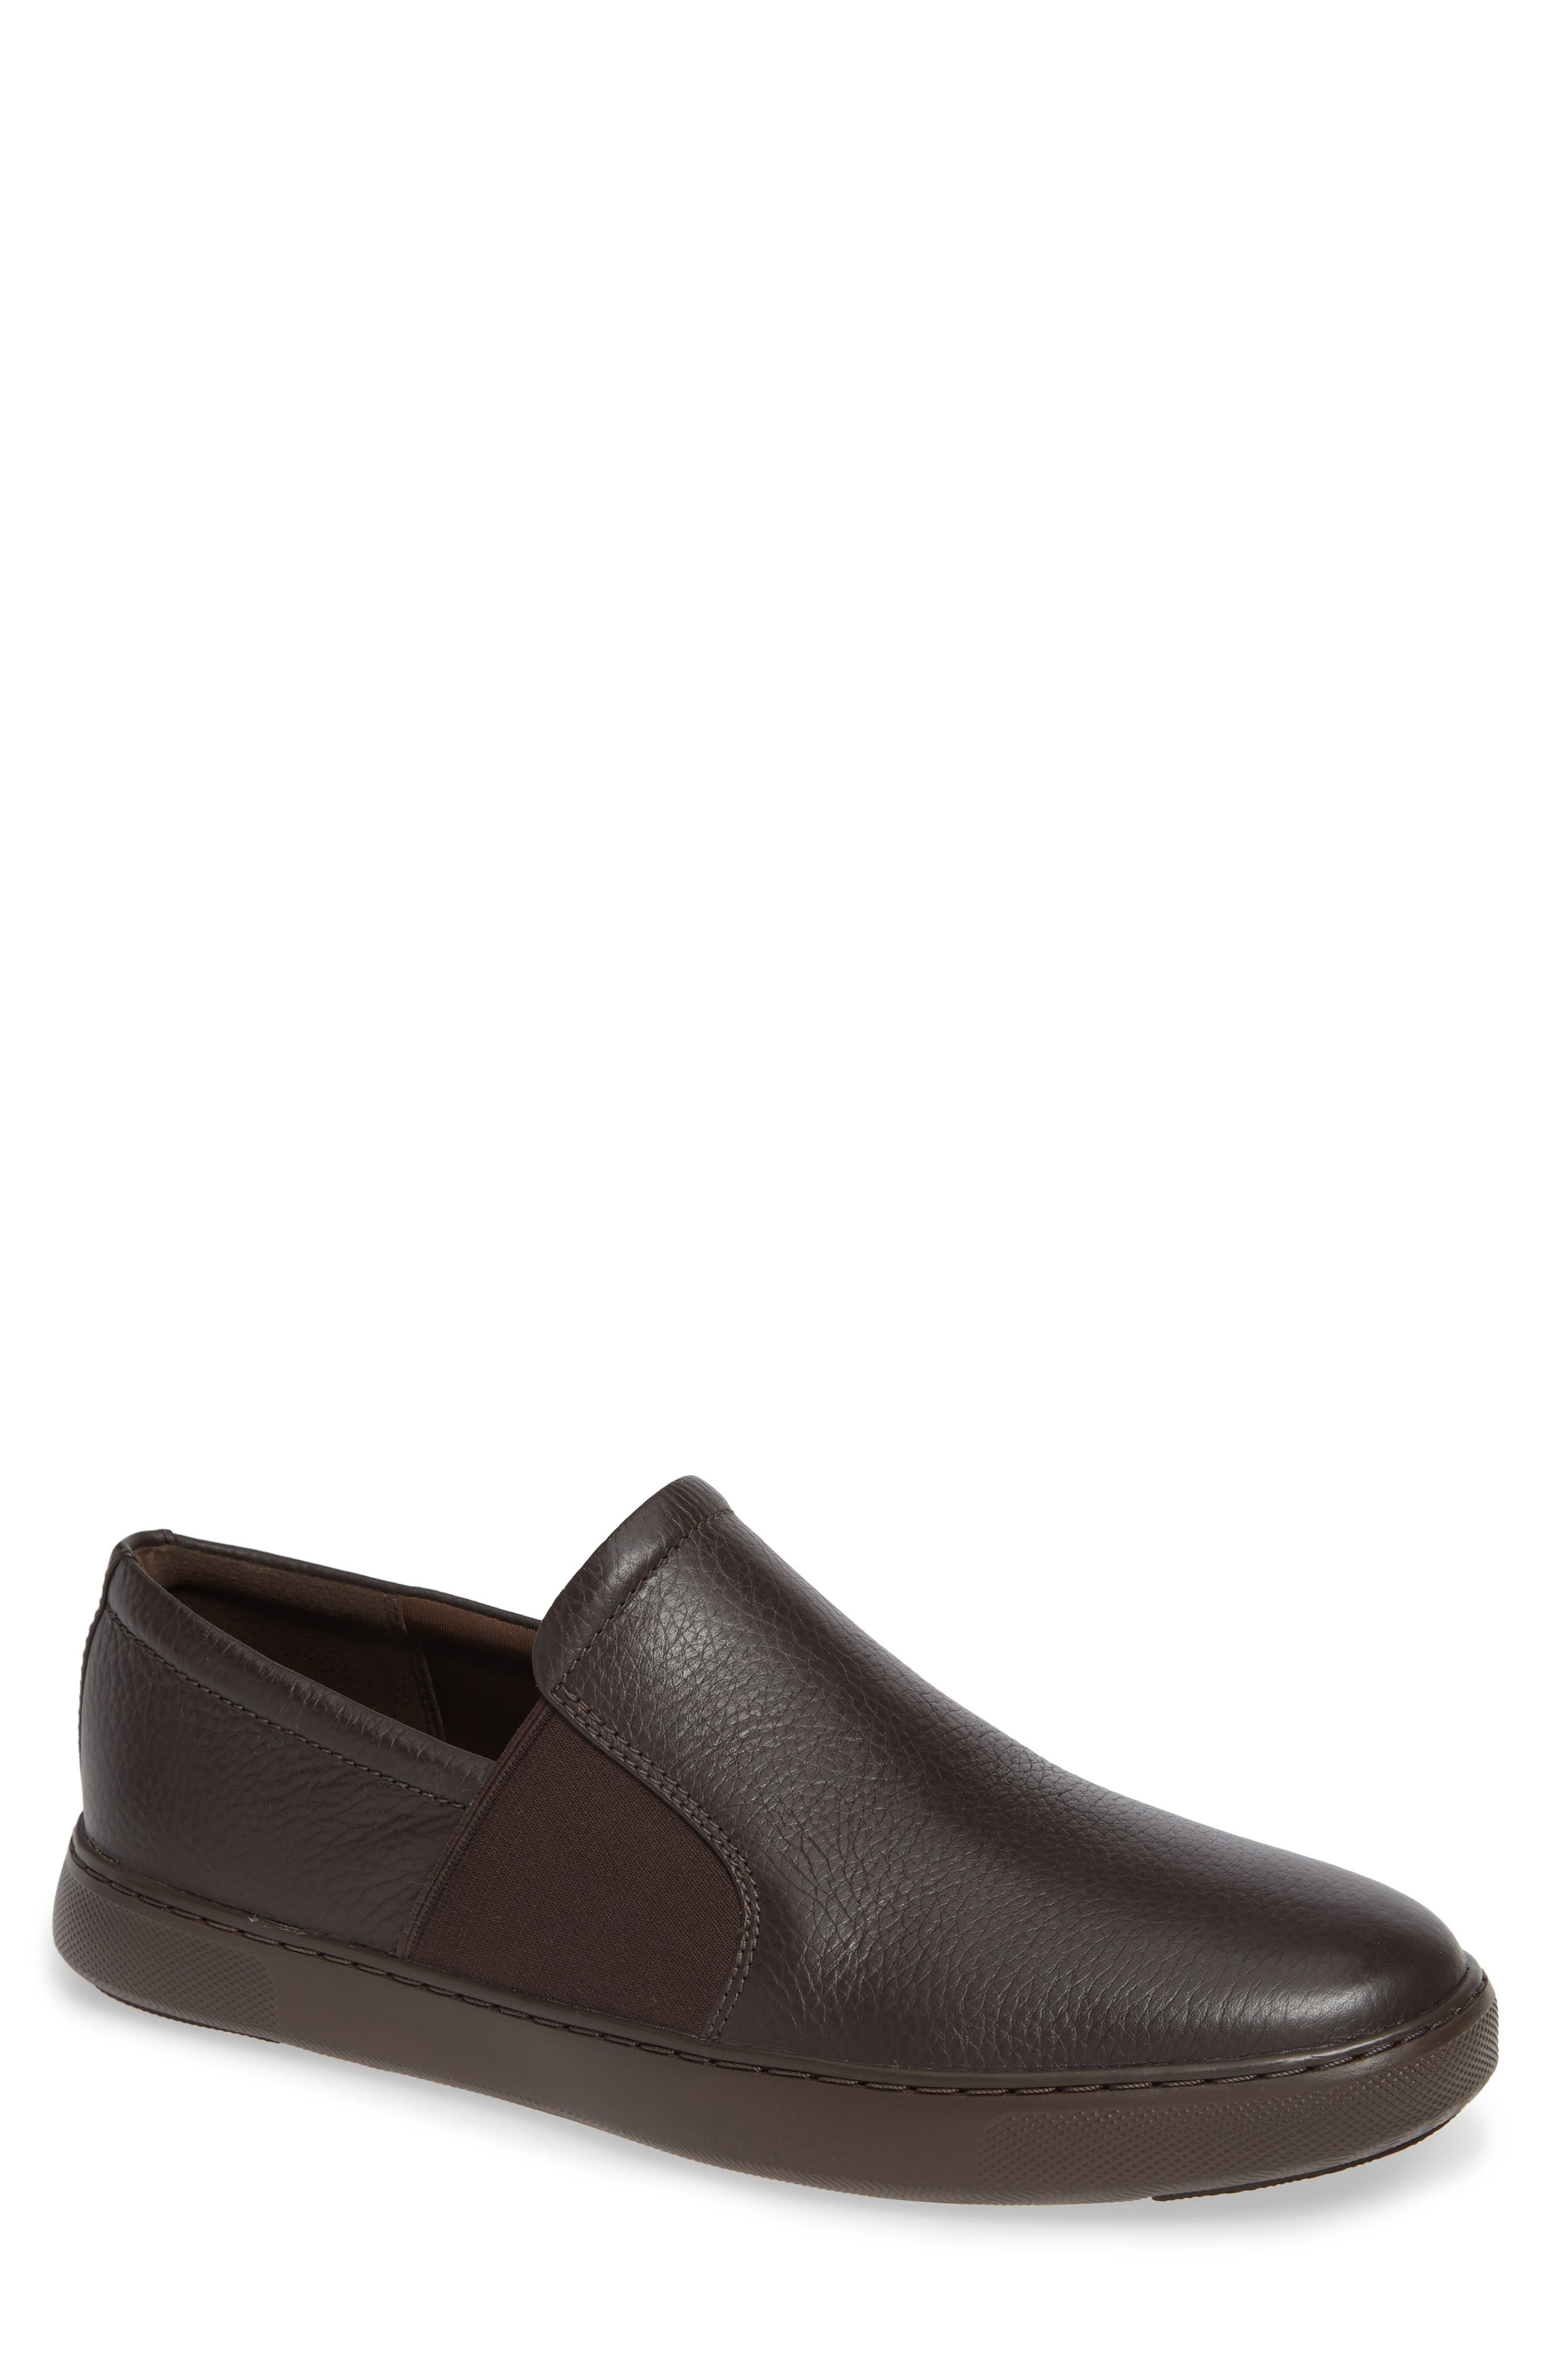 Collins Slip-On Sneaker,                         Main,                         color, CHOCOLATE